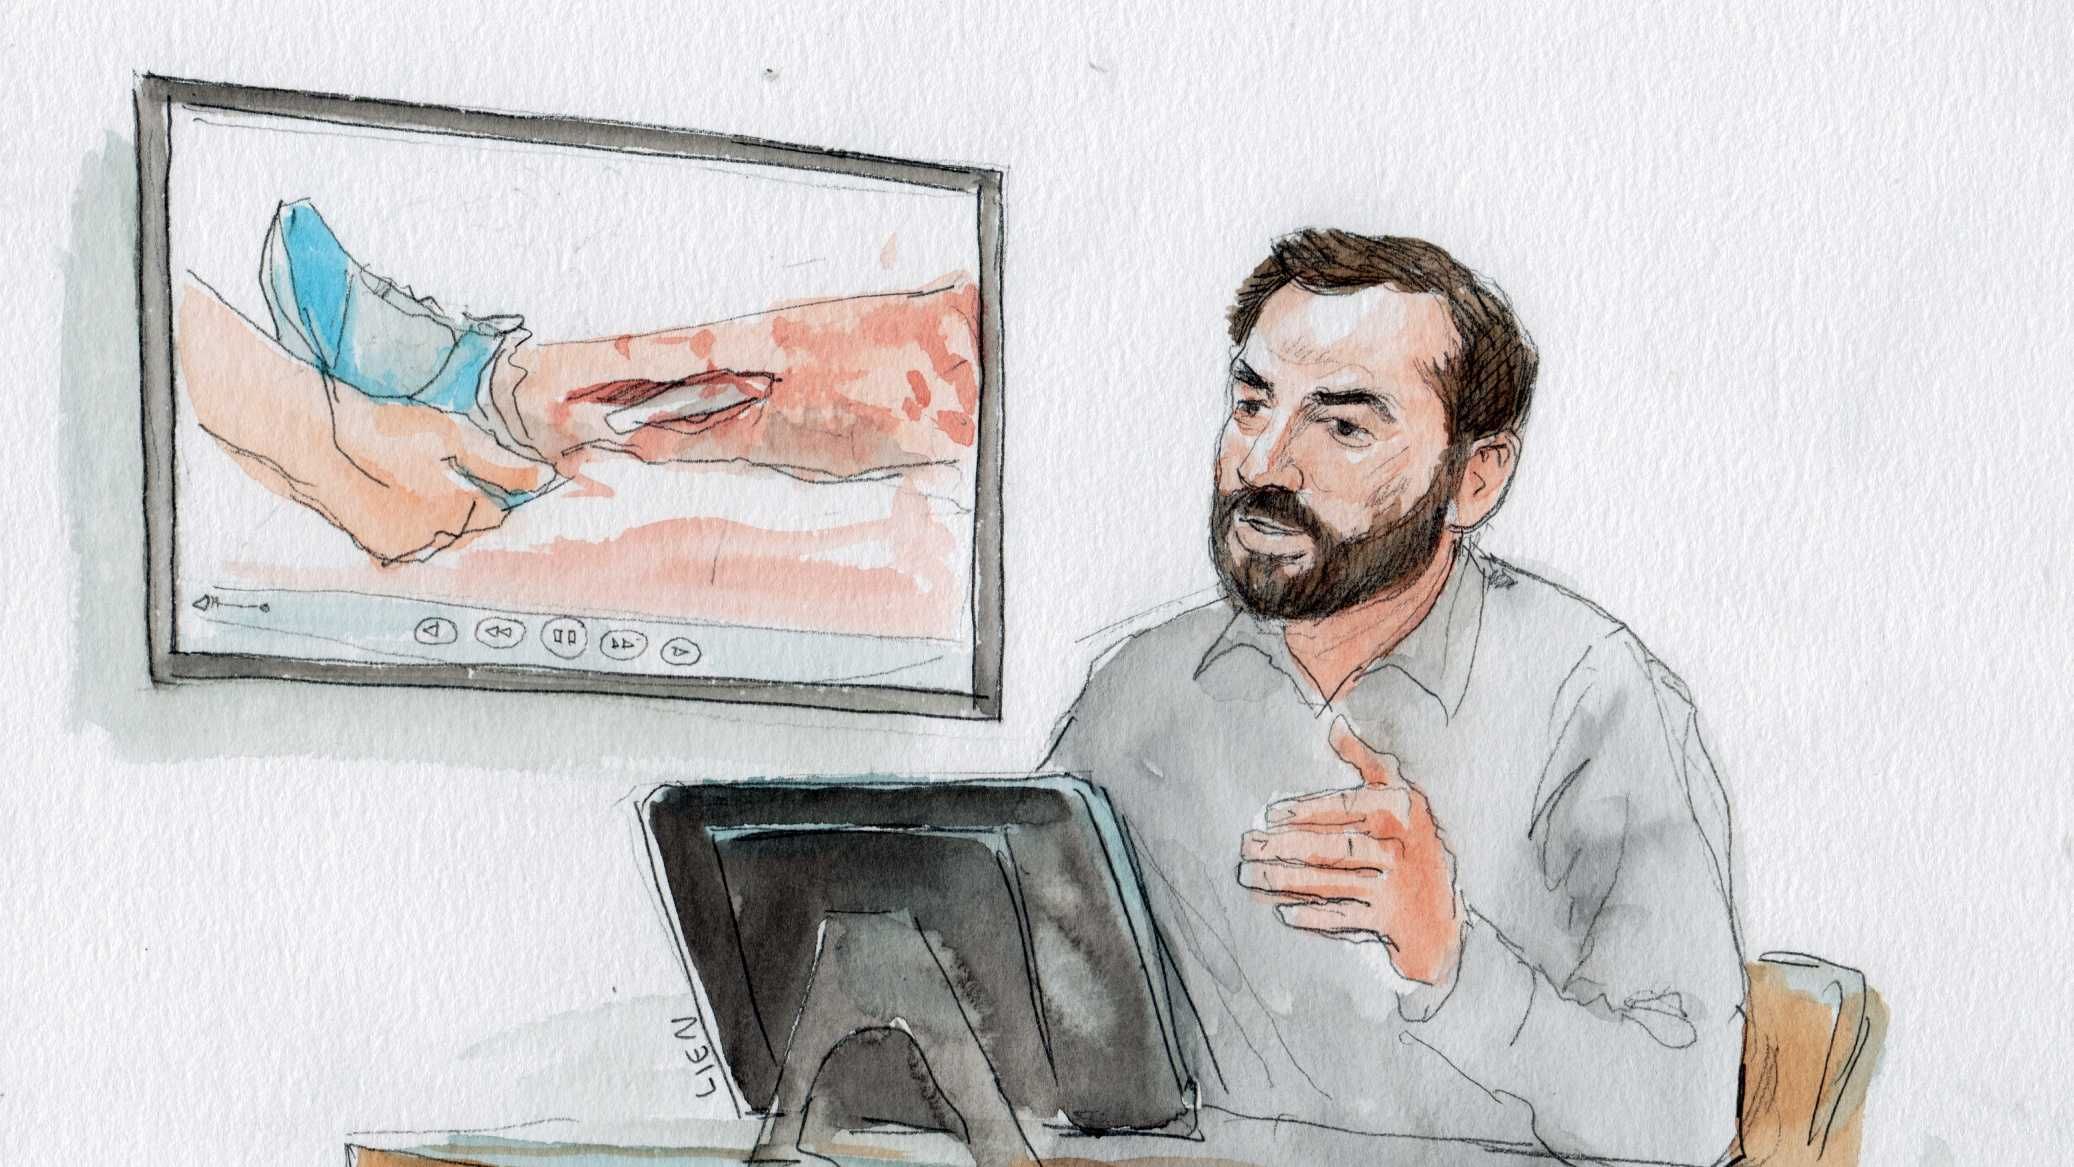 Colton Kilgore on the witness stand for the Boston Marathon Bombing Trial. (Art Lien/courtartist.com)